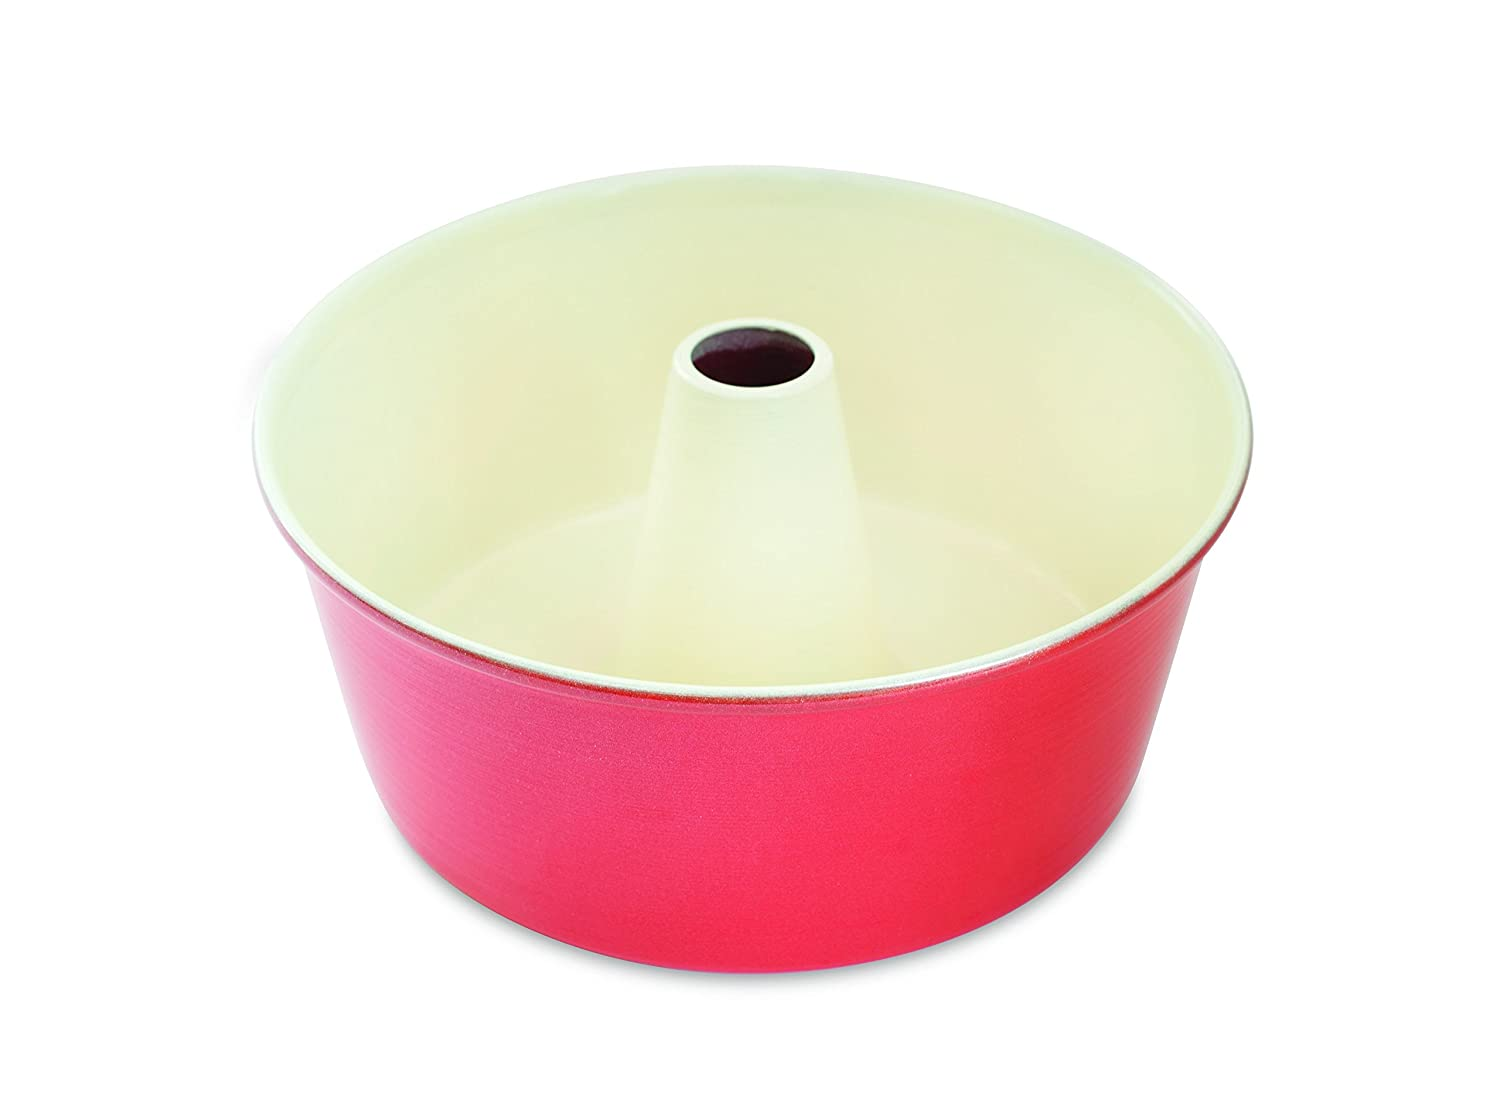 Nordic Ware Angel Food Cake Pan, 16 Cup, Red